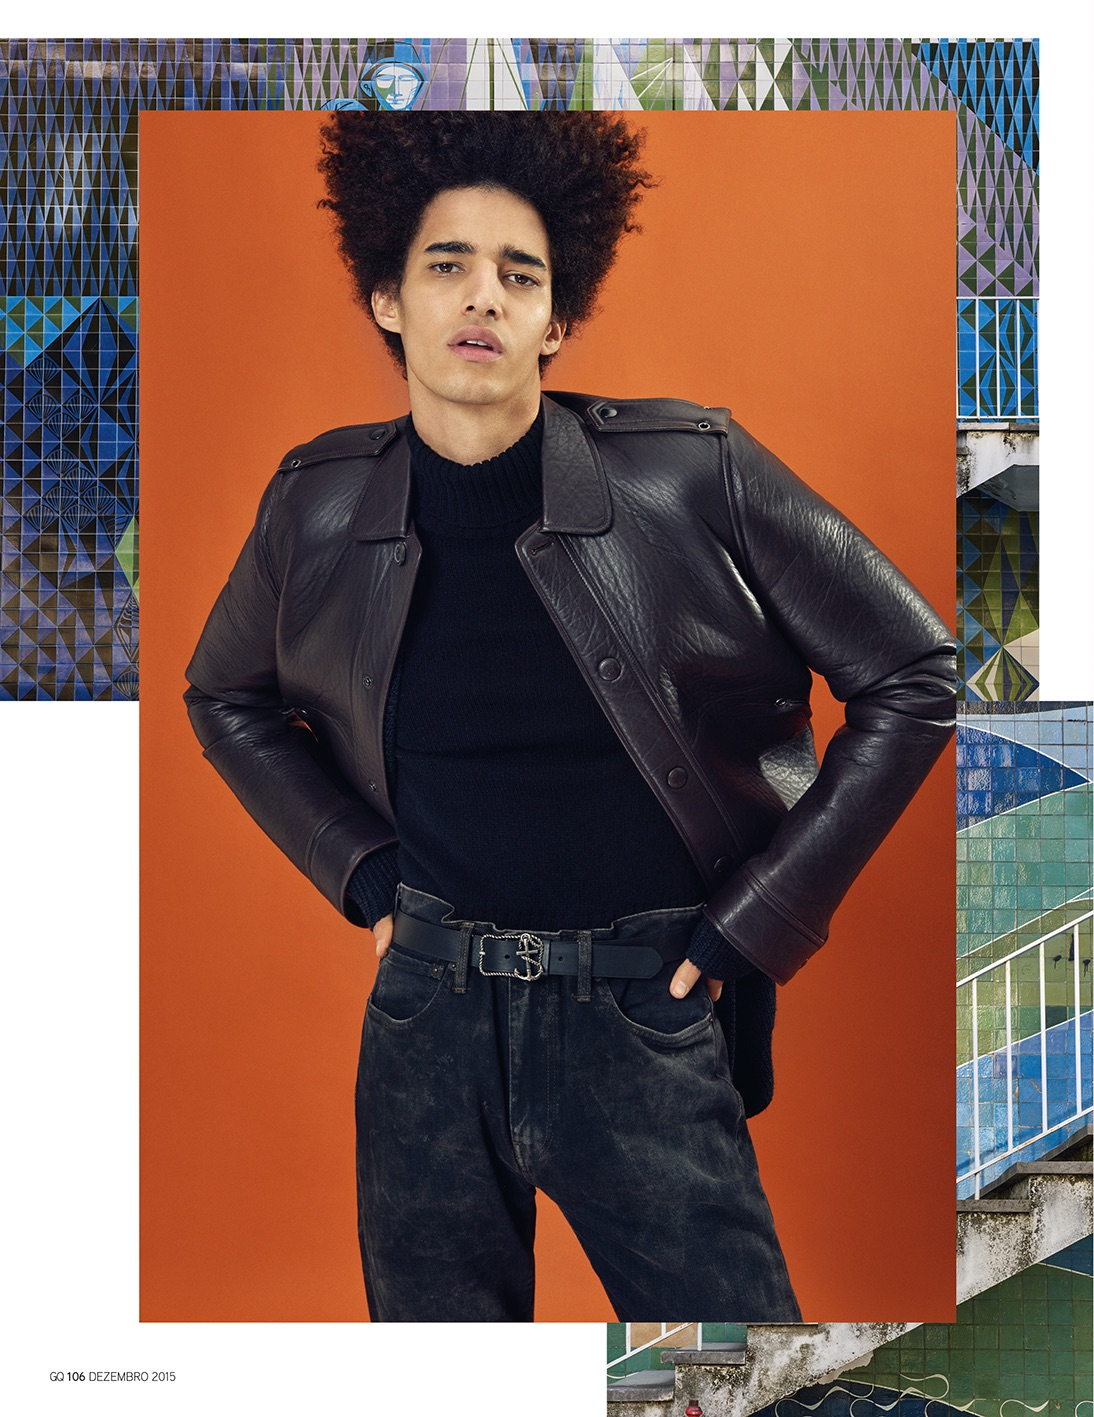 GQ Portugal: Luis Borges Rocks 1970s Fashion Trend